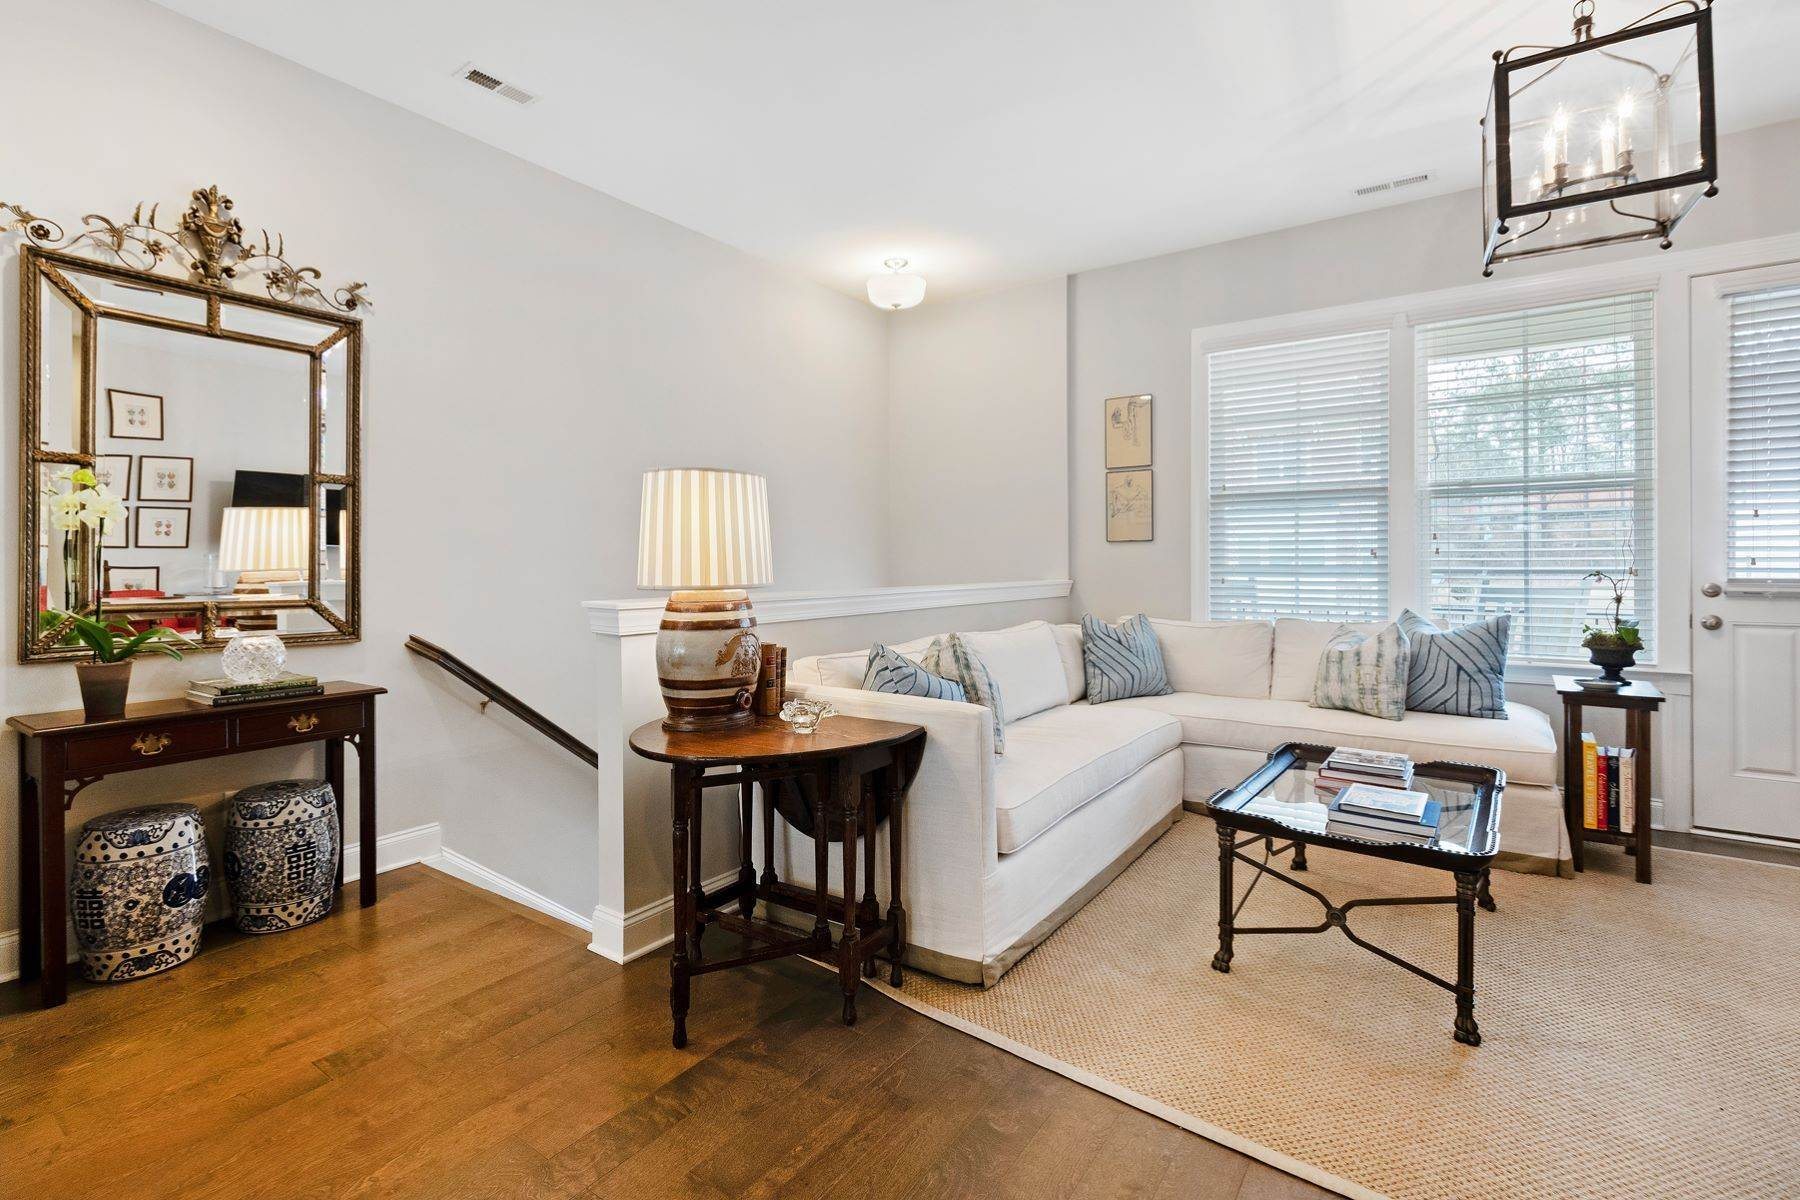 2. townhouses for Sale at 822 Bankston Woods Way Raleigh, North Carolina 27609 United States